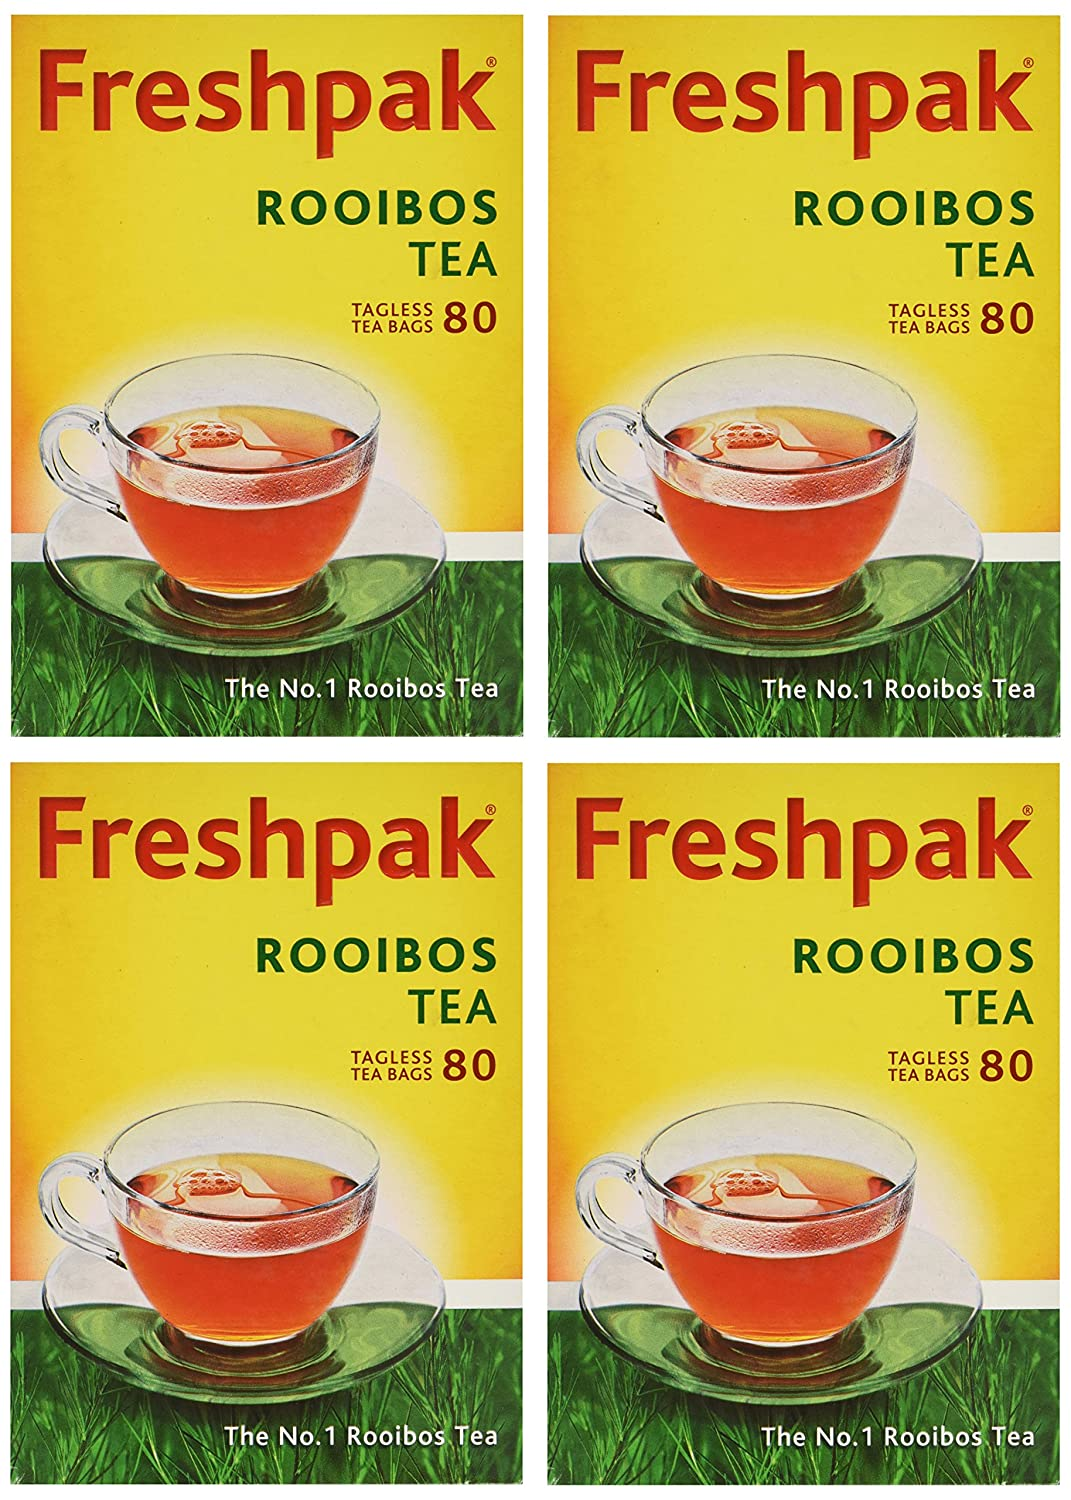 Freshpak Pure Low price Rooibos Tea 80 Pack 4 Tagless X Bags Max 73% OFF